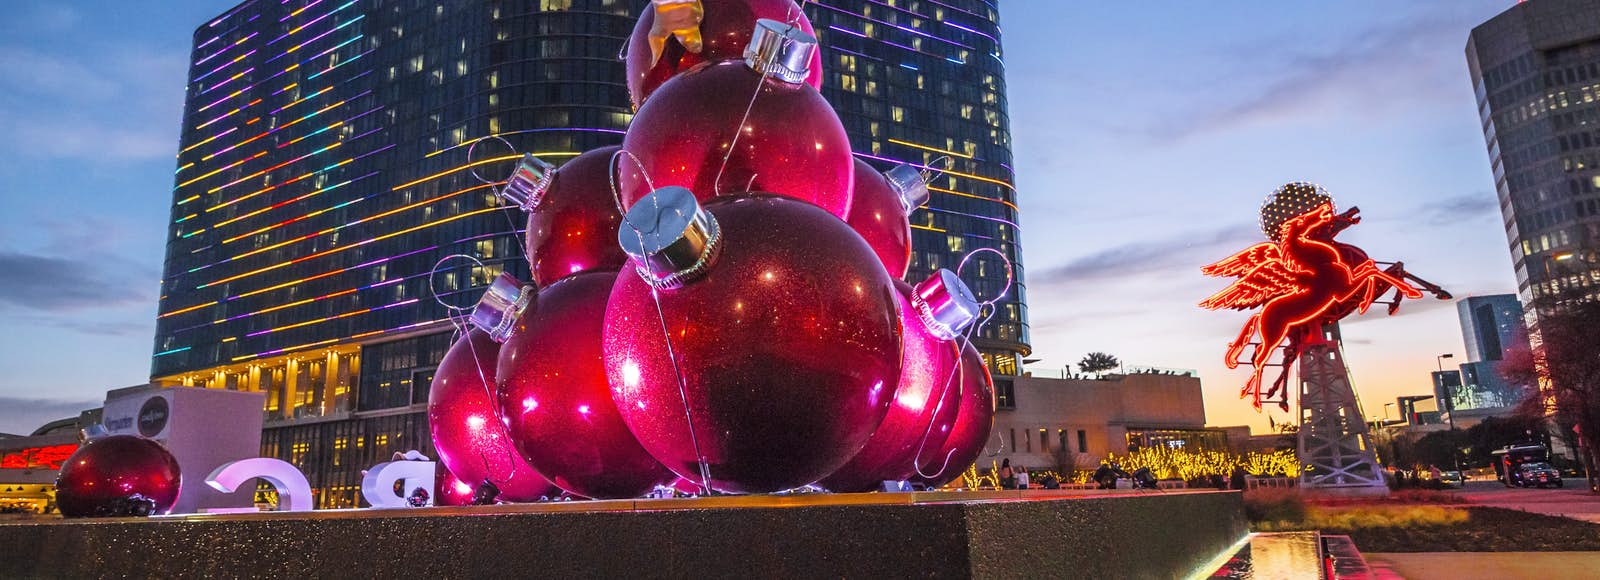 24 things to do in dallas this winter - Christmas Things To Do In Dallas